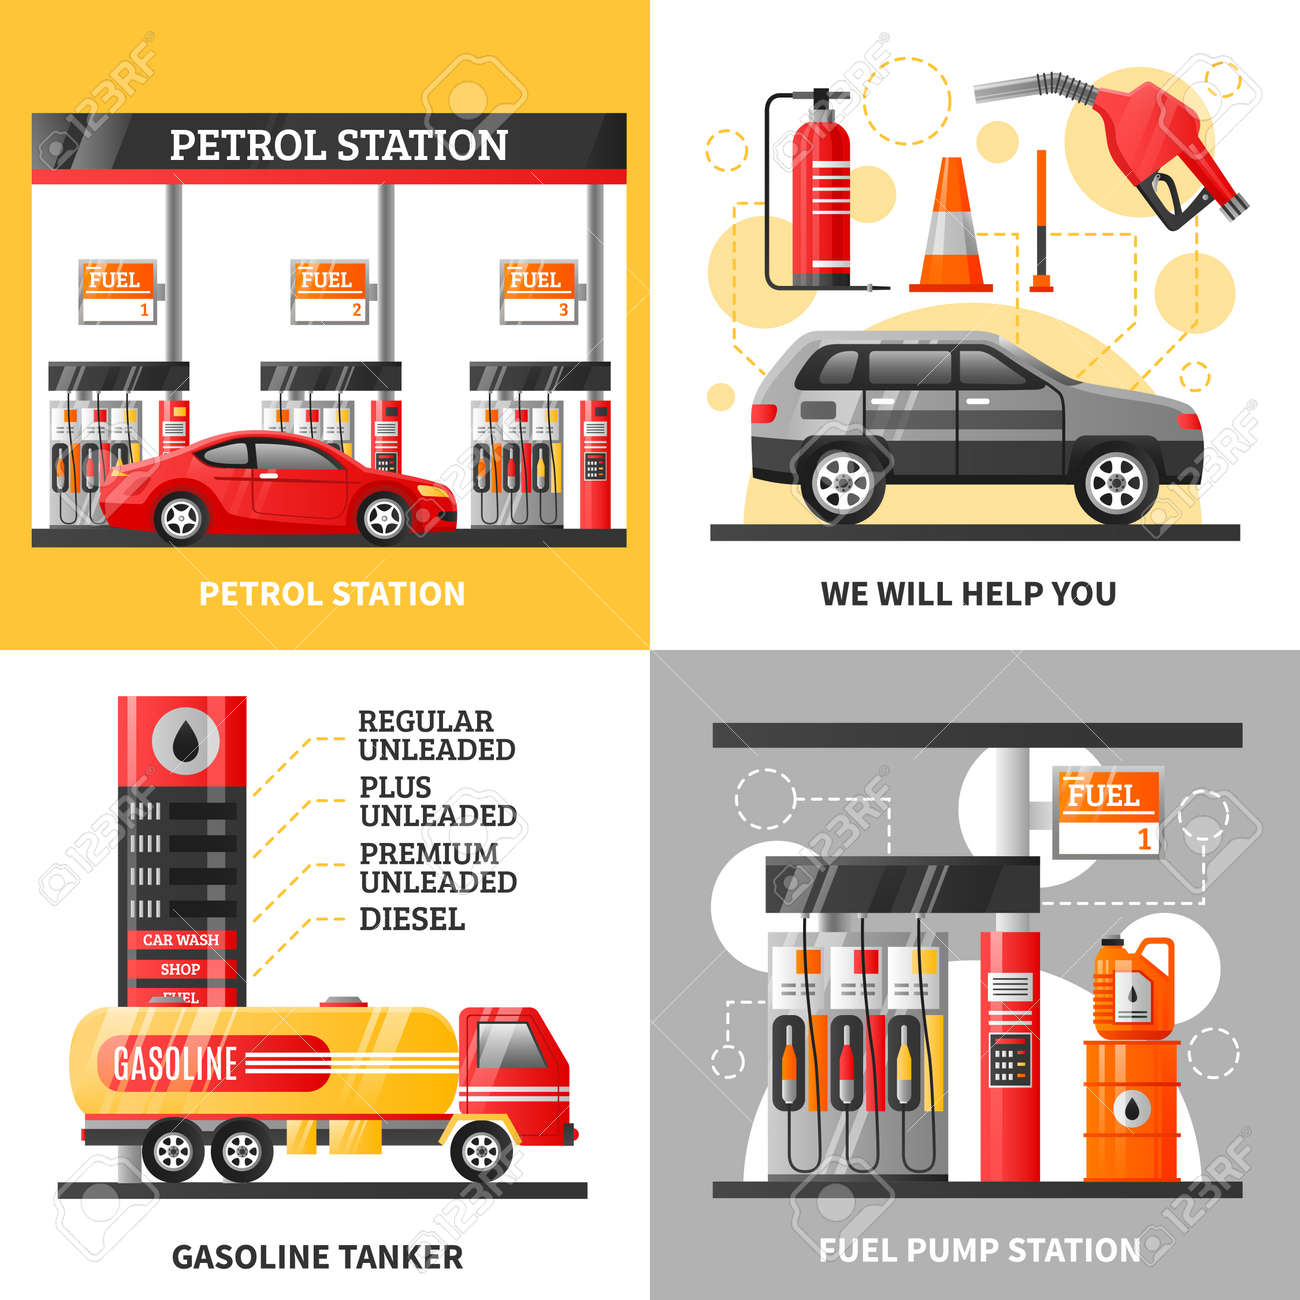 Gas and petrol station 2x2 design concept with petrol station gasoline tanker and fuel pump station flat vector illustration - 165571971